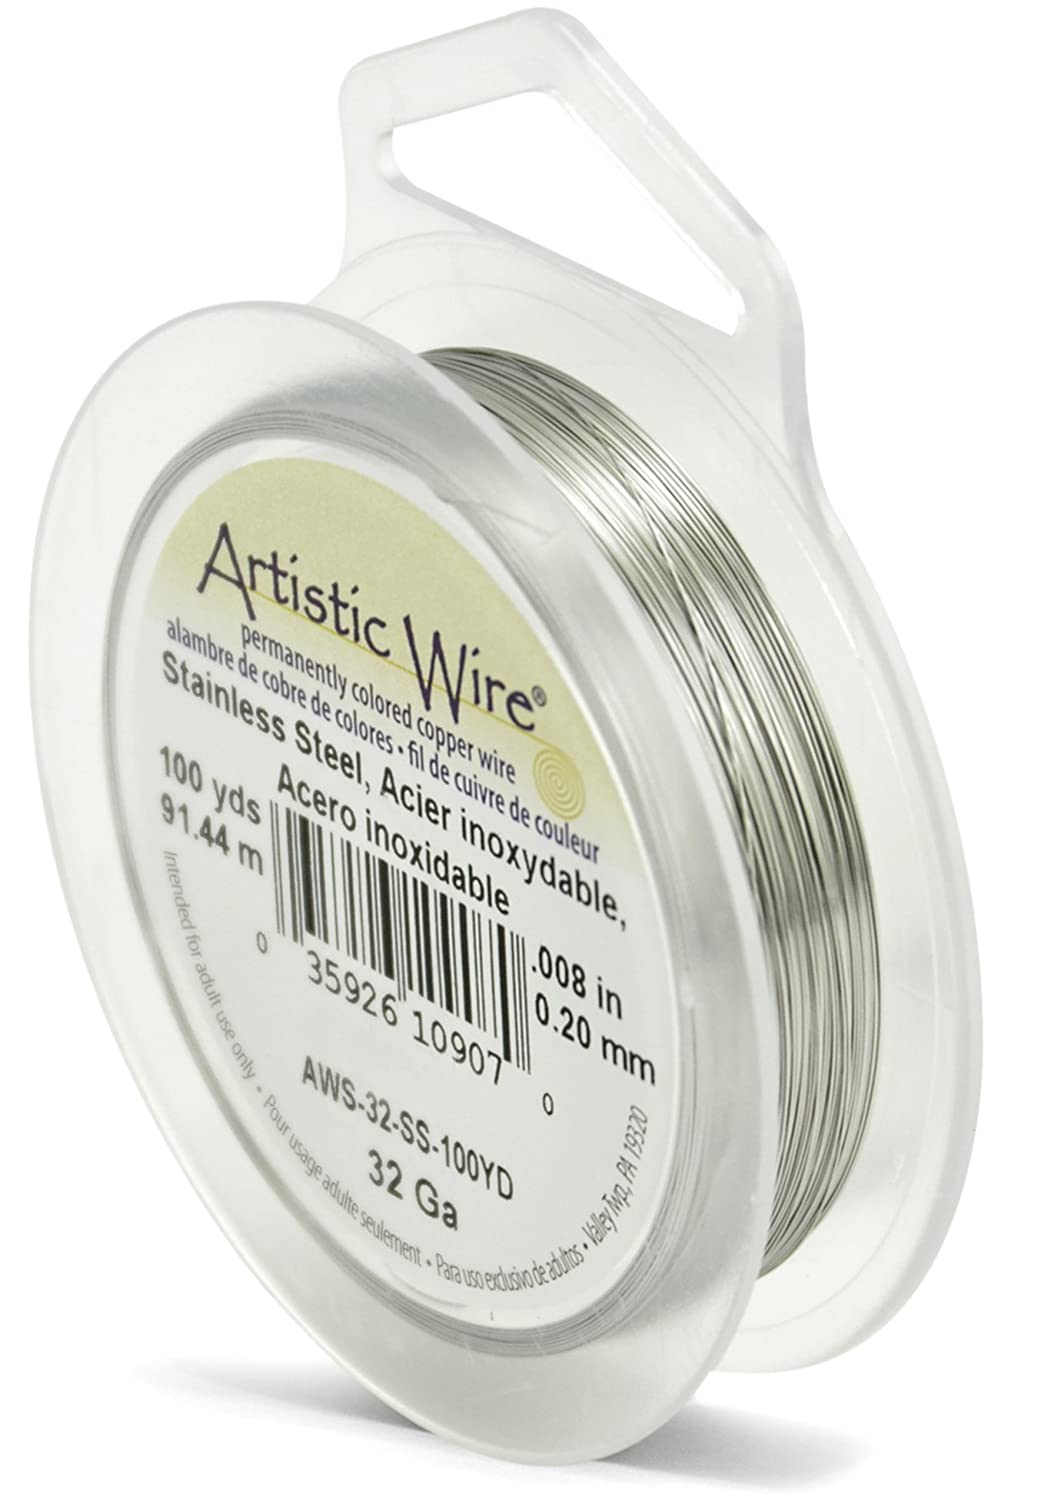 Amazon.com: Beadalon 32 Gauge Artistic Wire, Stainless Steel, 100-Yard